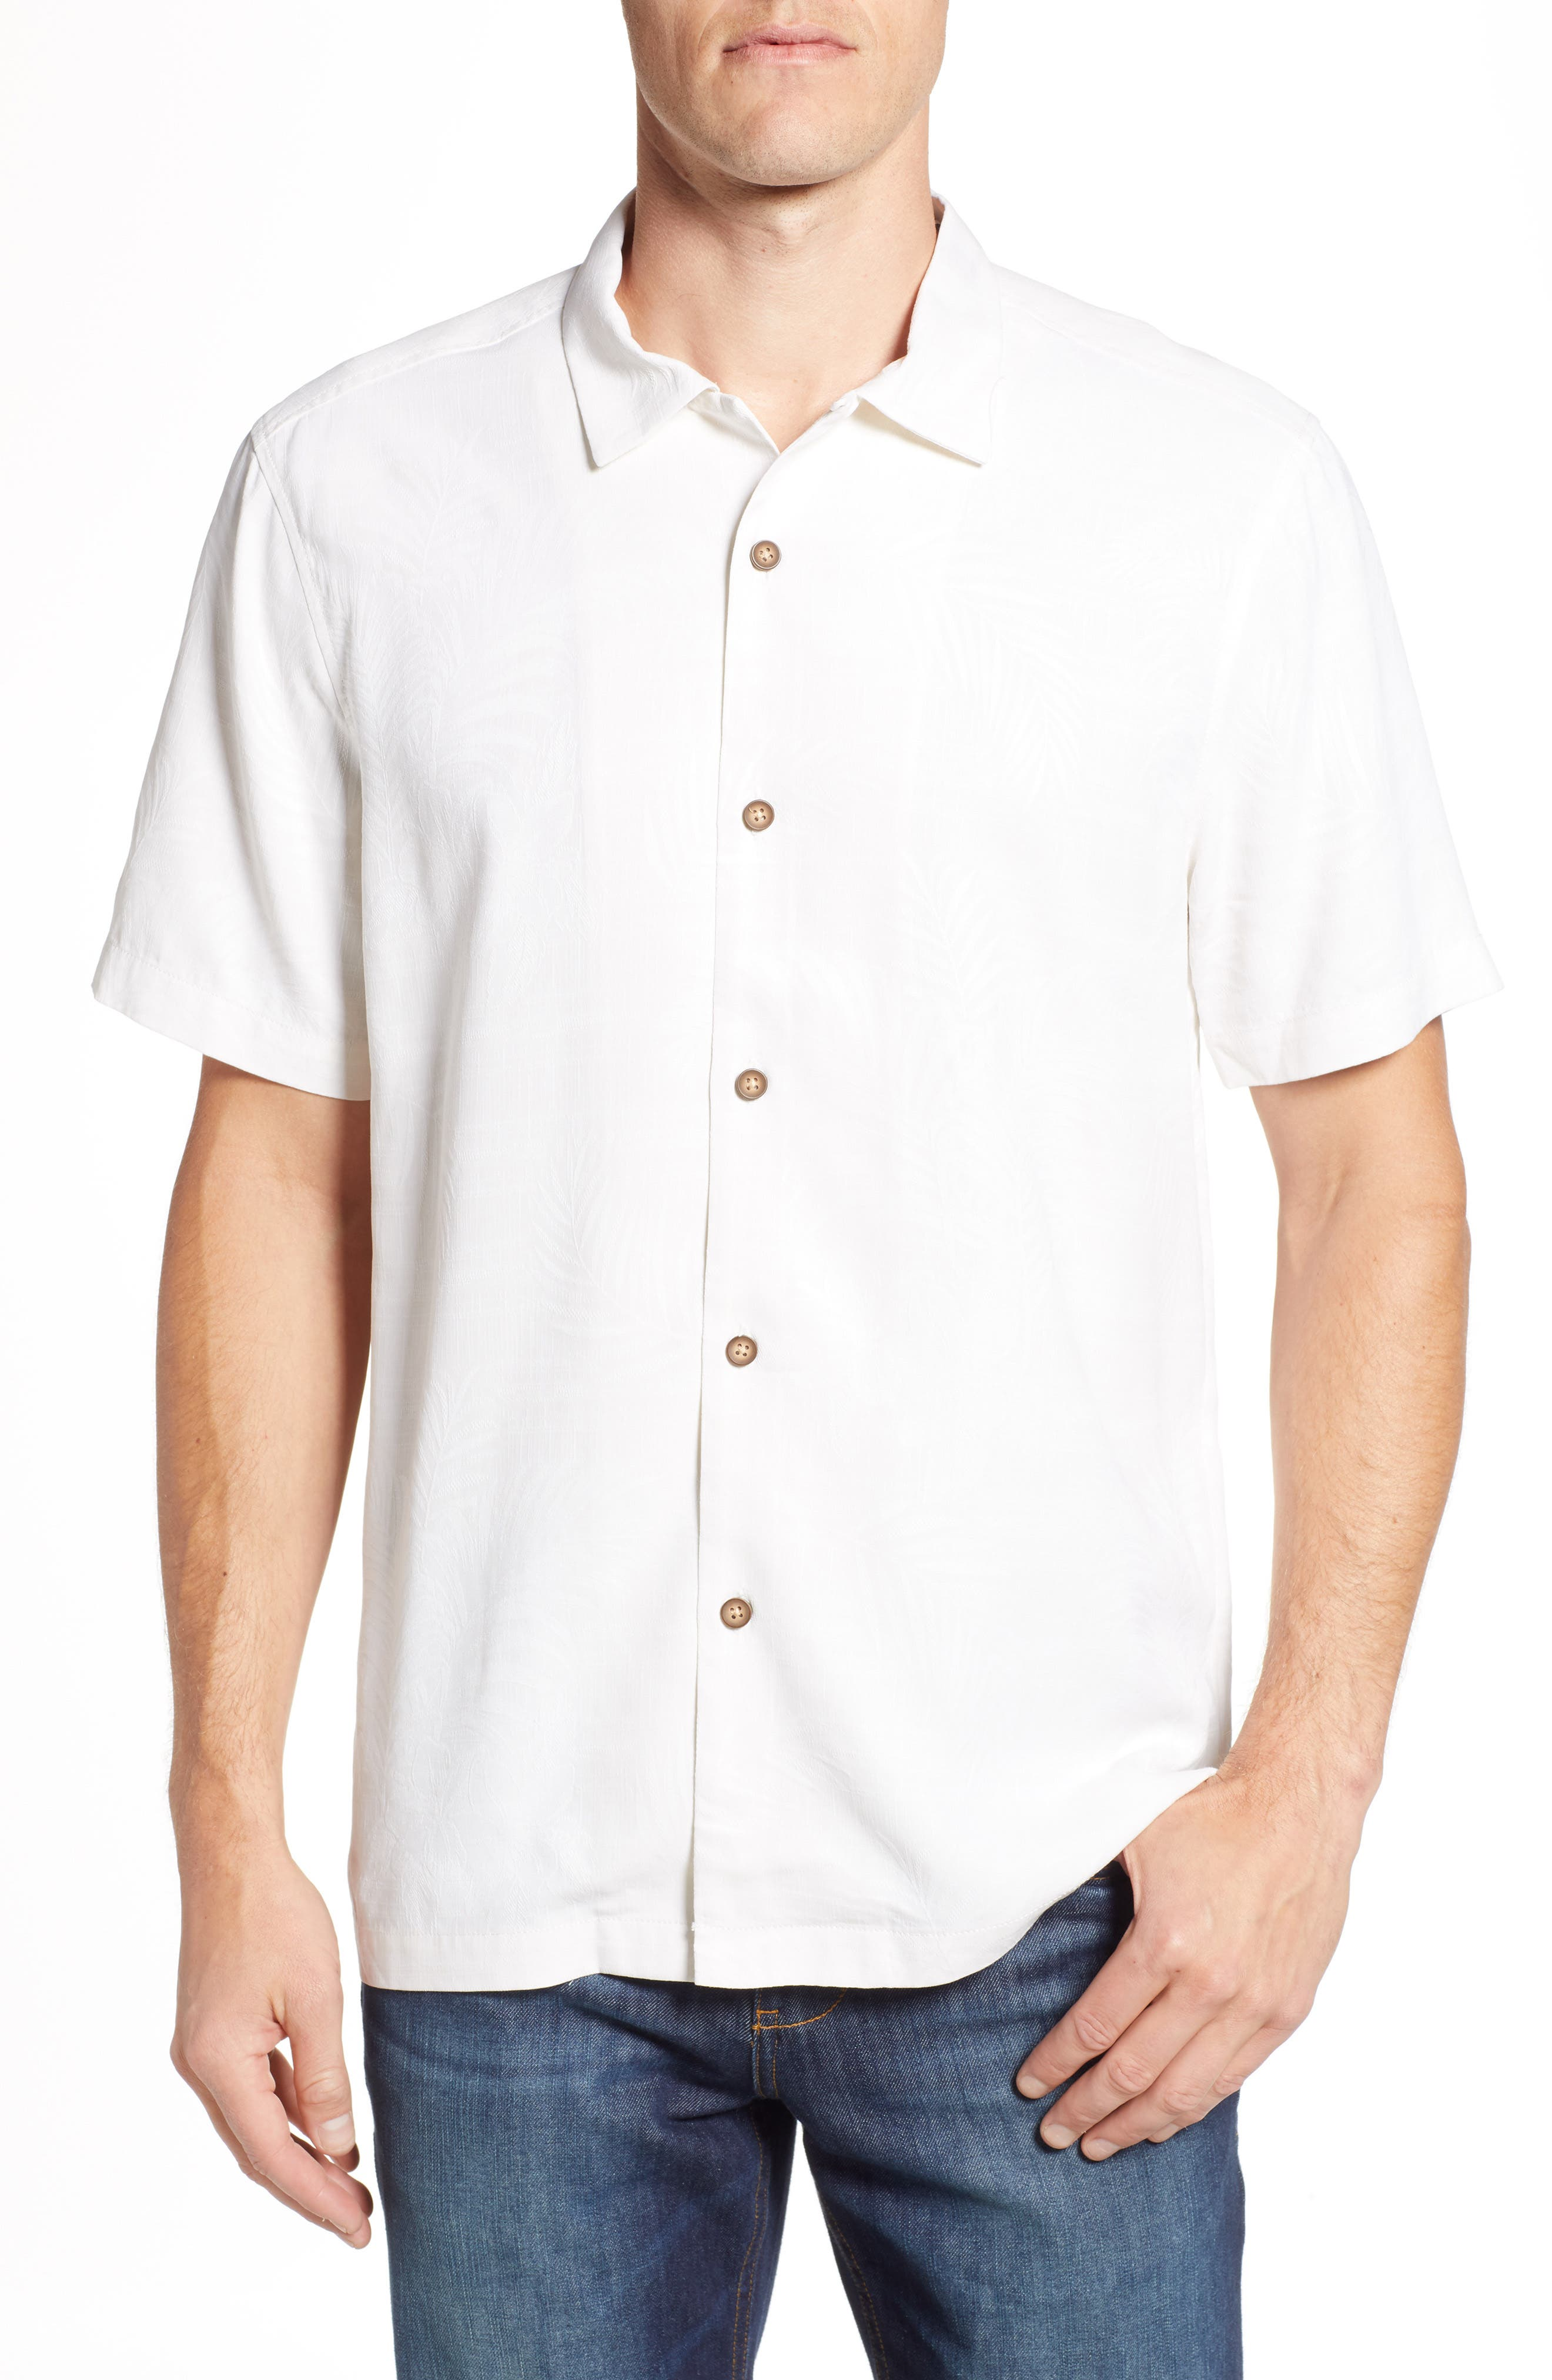 TOMMY BAHAMA Tailgate Club Embroidered Silk Camp Shirt, Main, color, 100